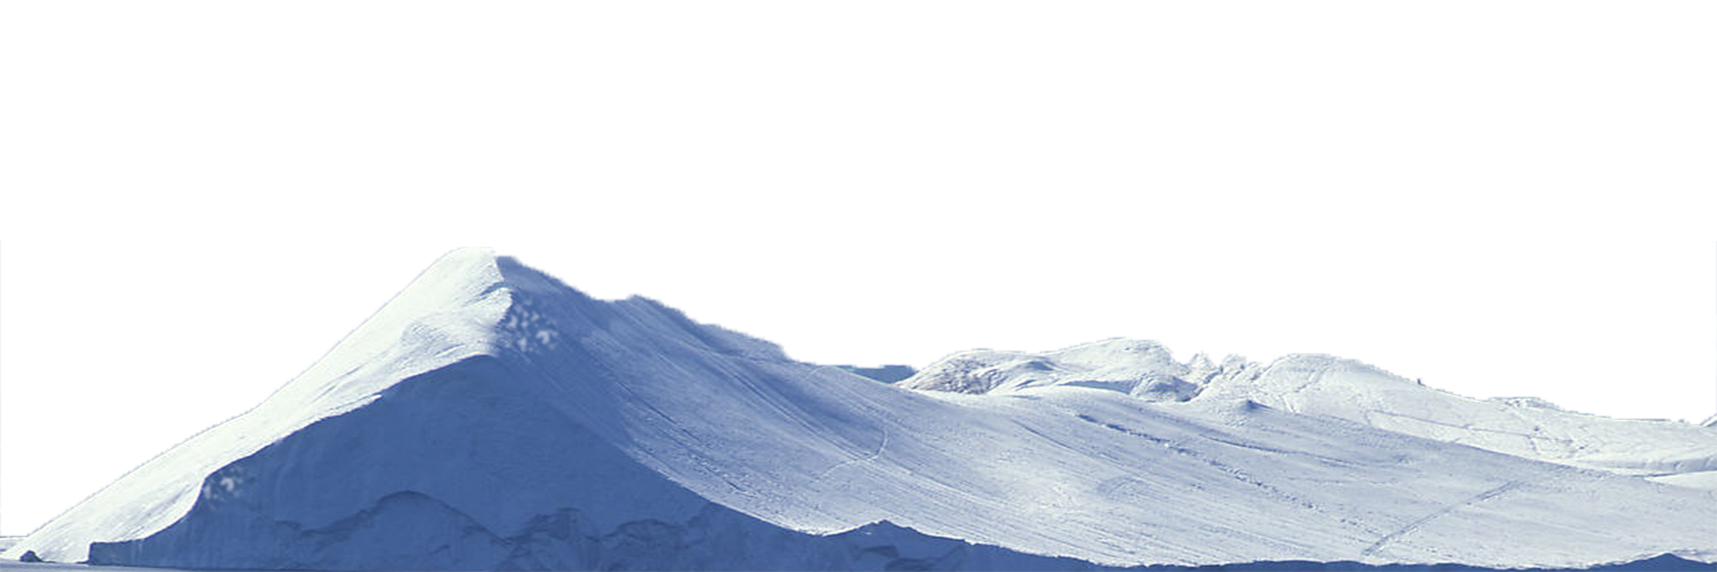 Snowy Mountains Png & Free Snowy Mountains.png Transparent ...